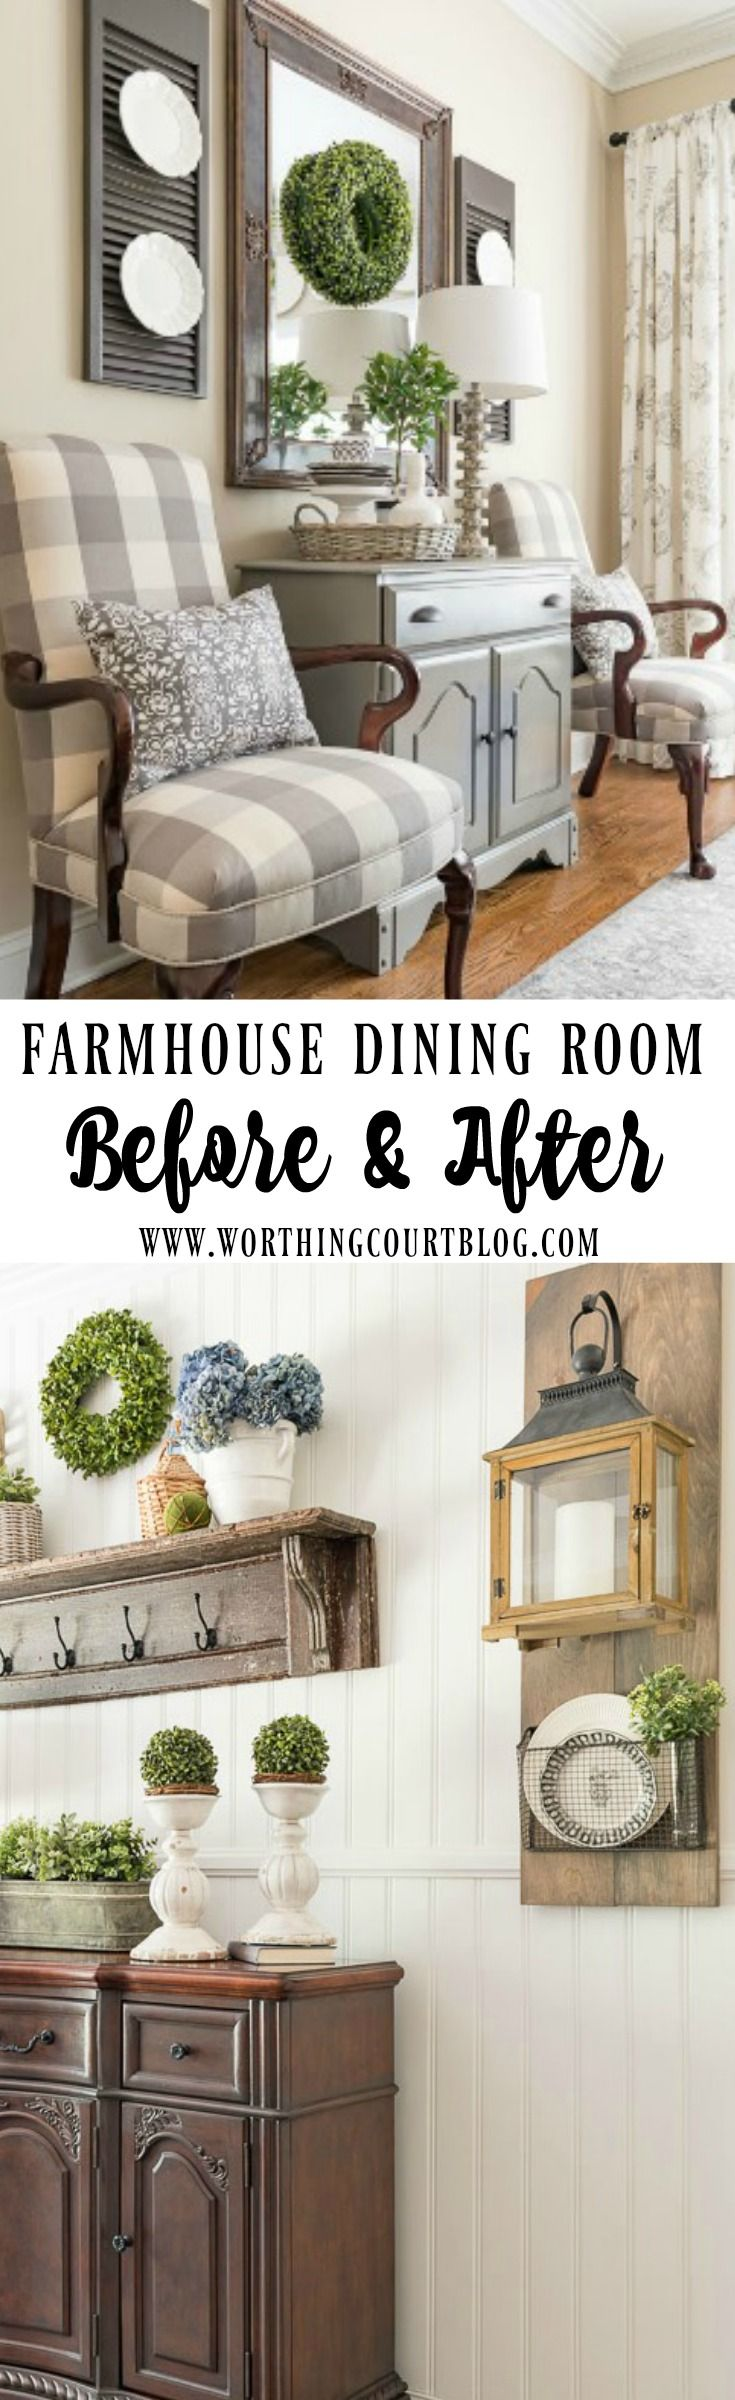 Rustic Dining Table Decor 25+ best dining room shelves ideas on pinterest | dining room